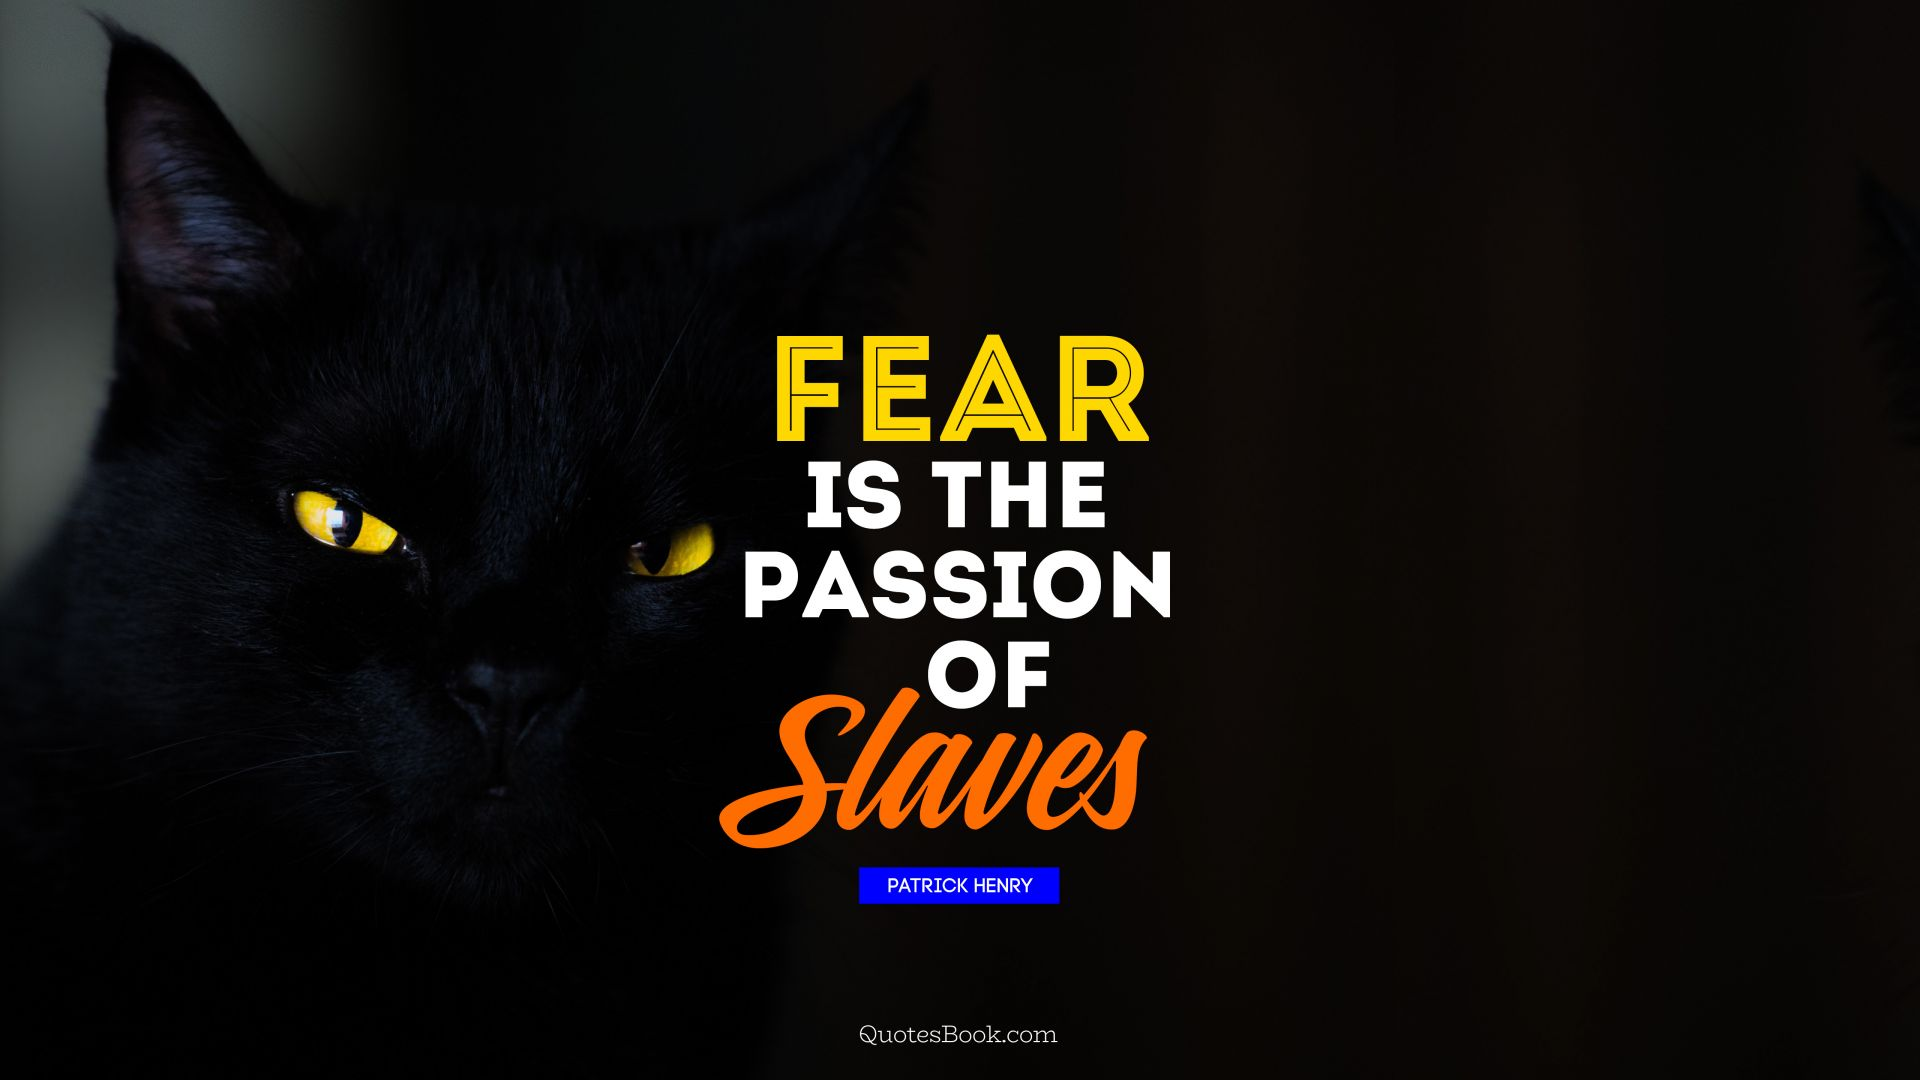 Fear is the passion of slaves. - Quote by Patrick Henry